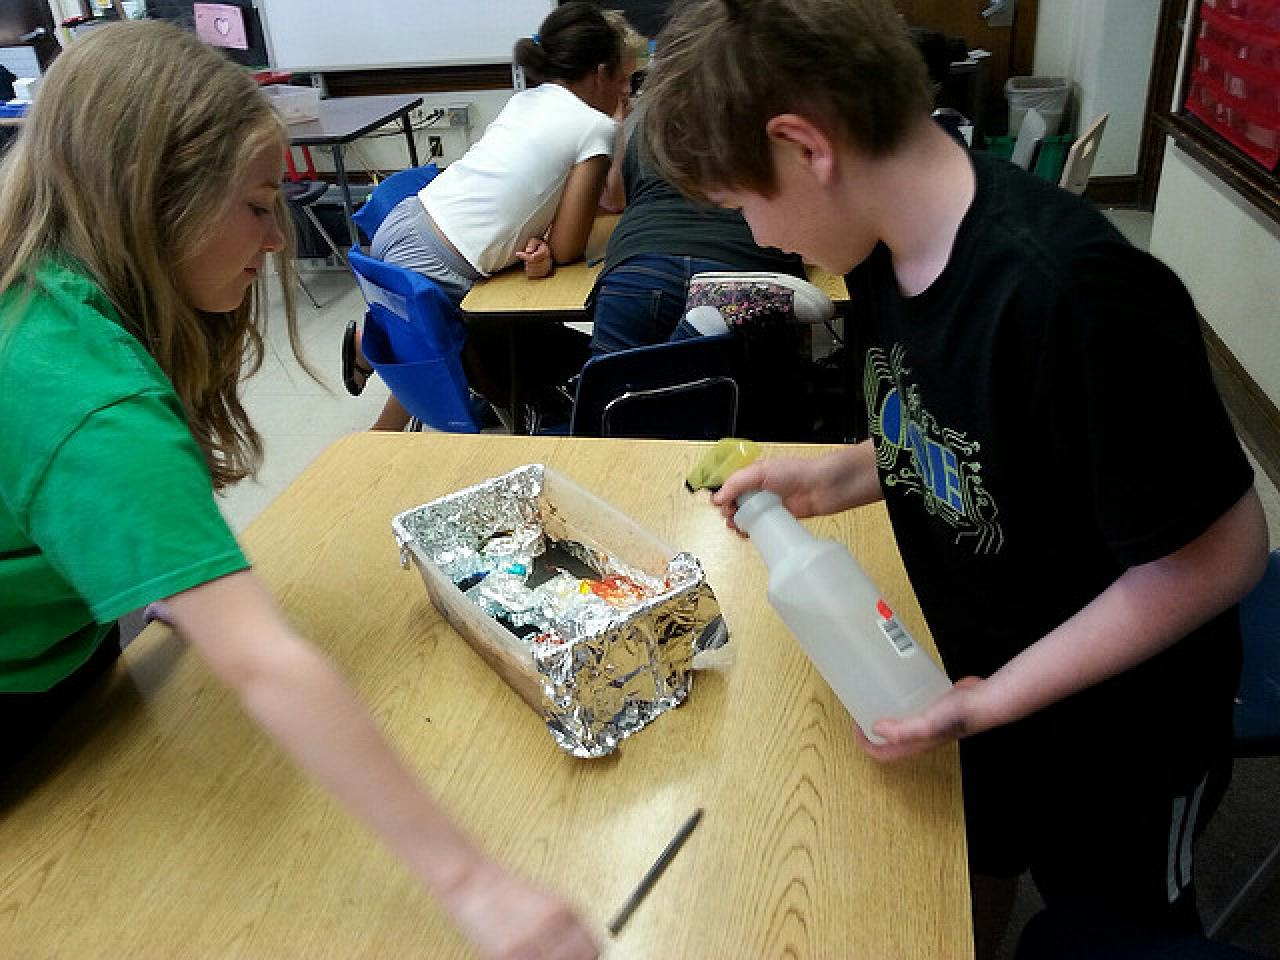 Dowling students explore watersheds using models and spray bottles